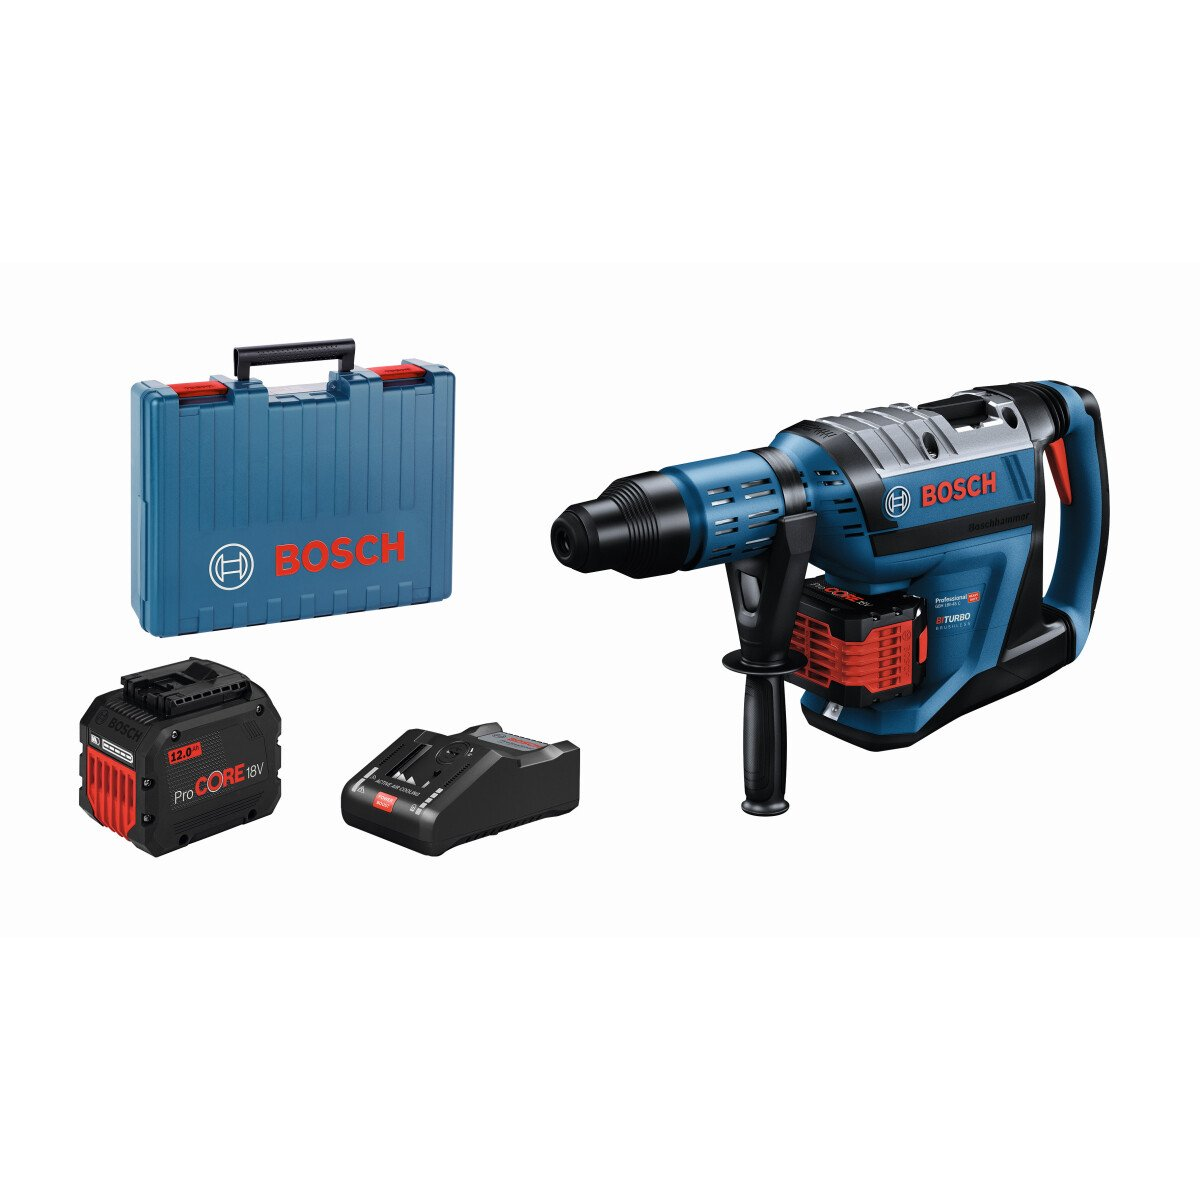 Bosch GBH 18V-45 C 18V BiTurbo Brushless SDS Max Hammer Drill Connection Ready 2x12.0Ah in Carry Case